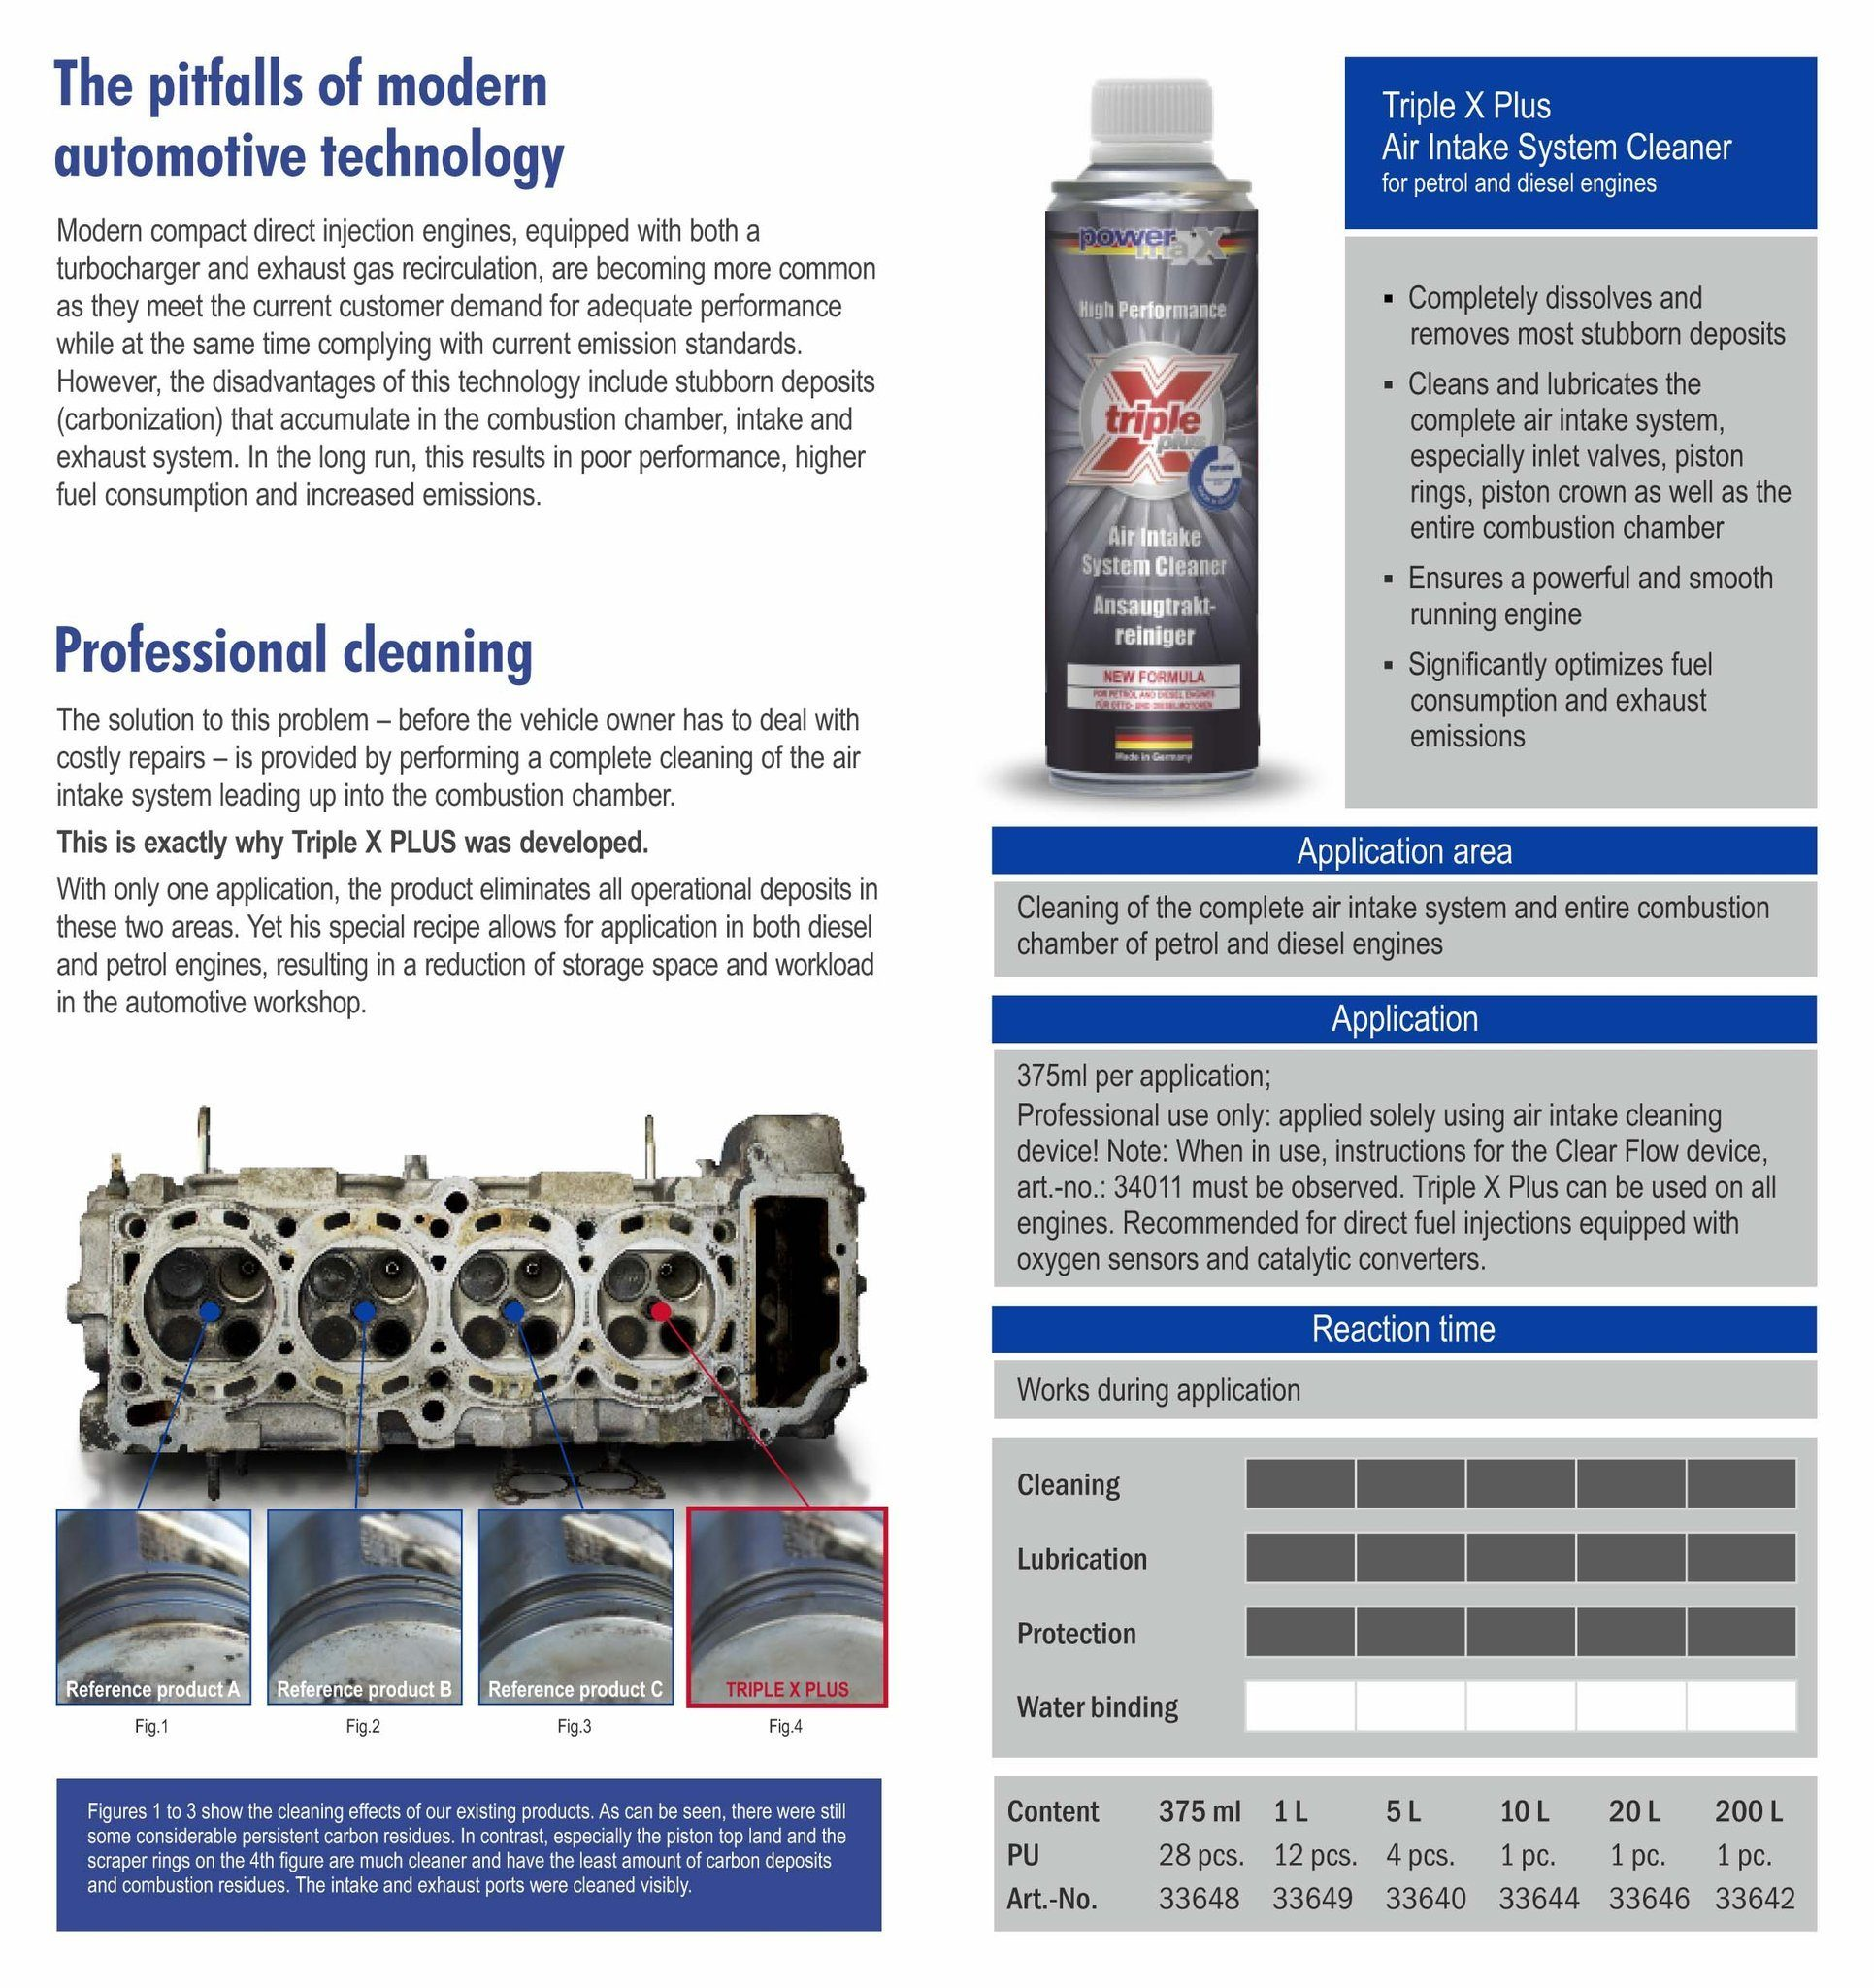 Valves & Injection System Cleaner & Triple X Plus Air Intake